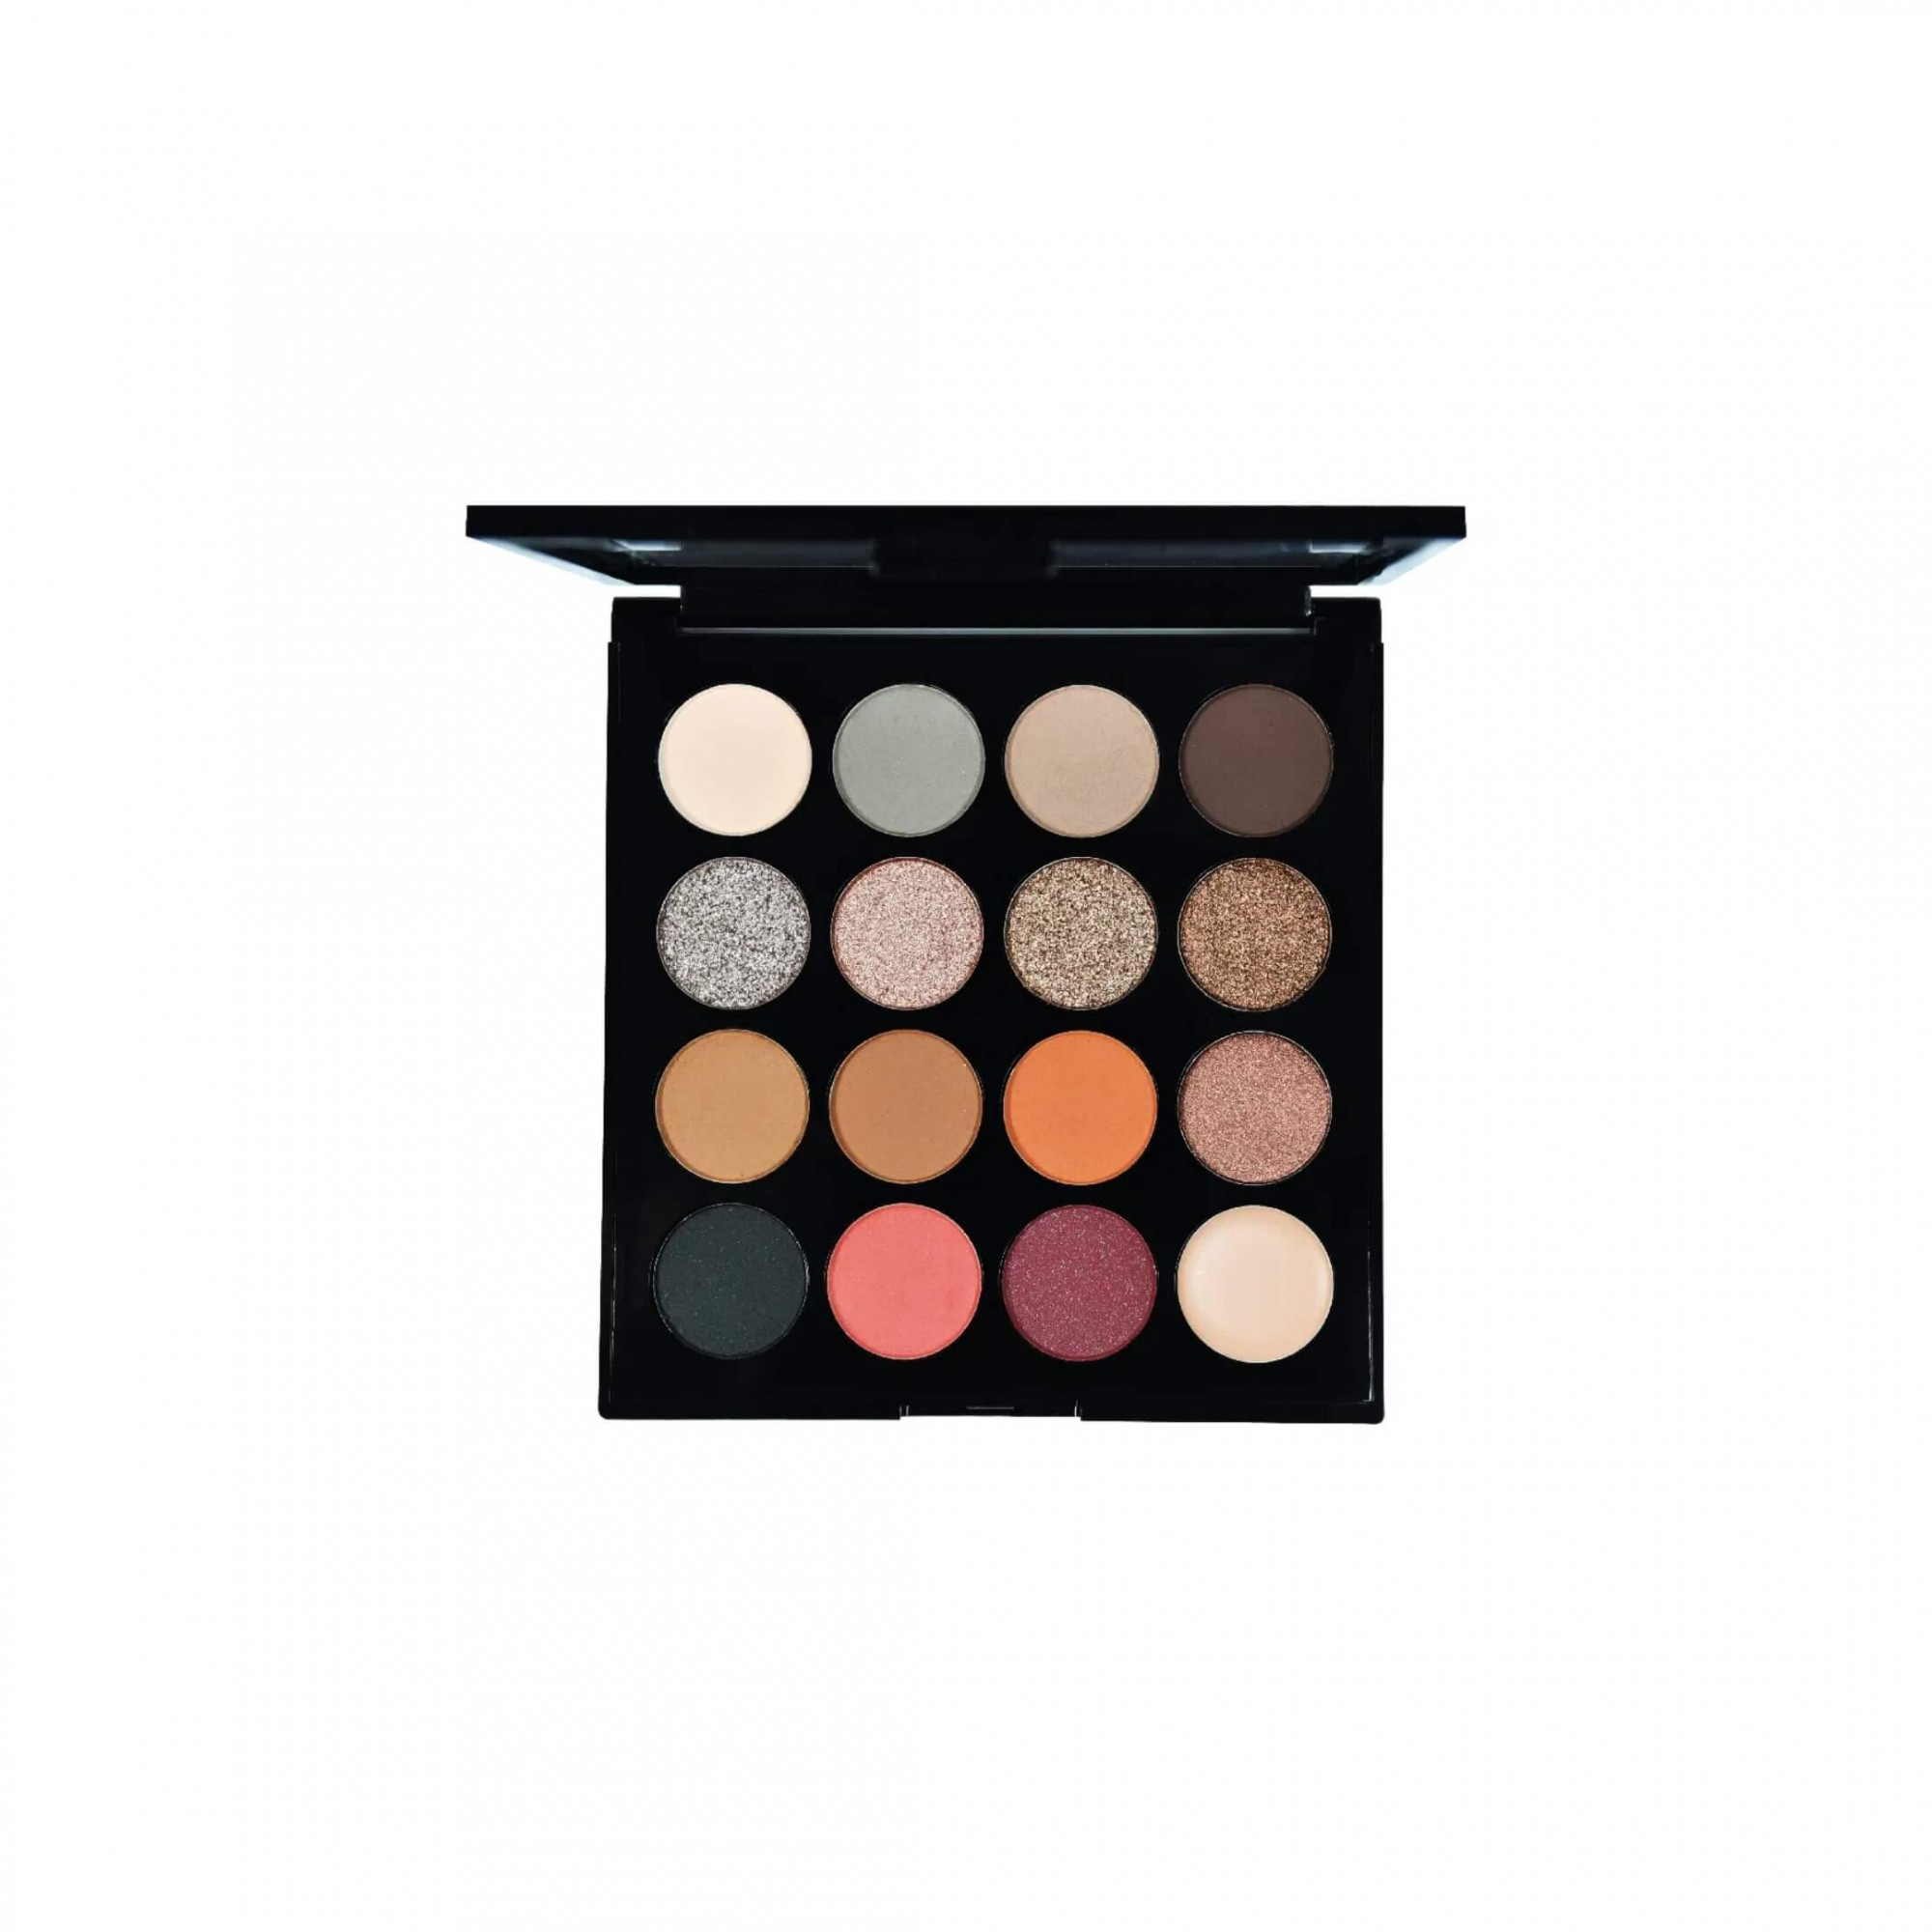 Paleta de sombras The Cocoa Ruby Rose